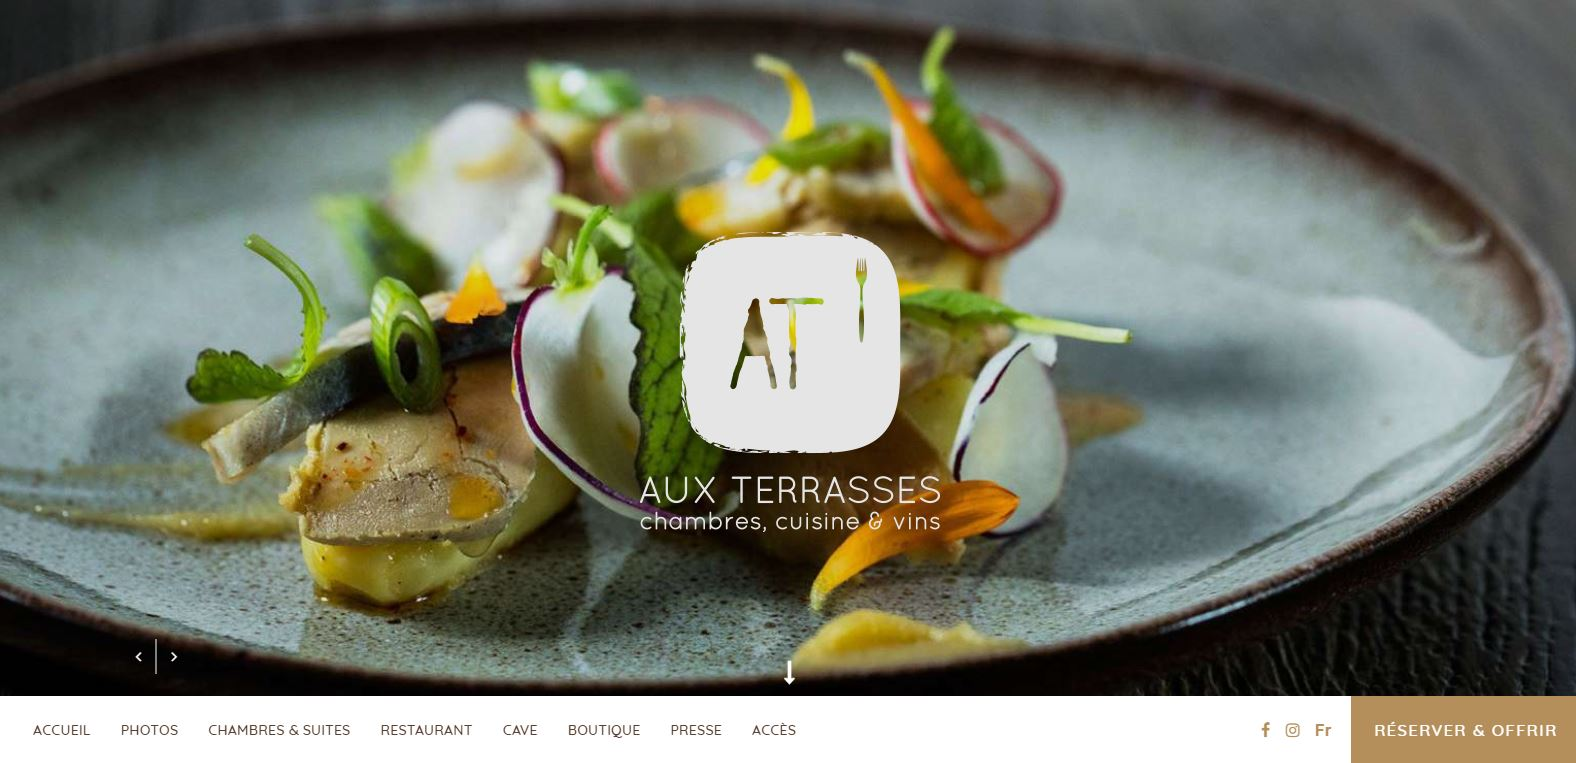 Restaurant Aux Terrasses in Tournus